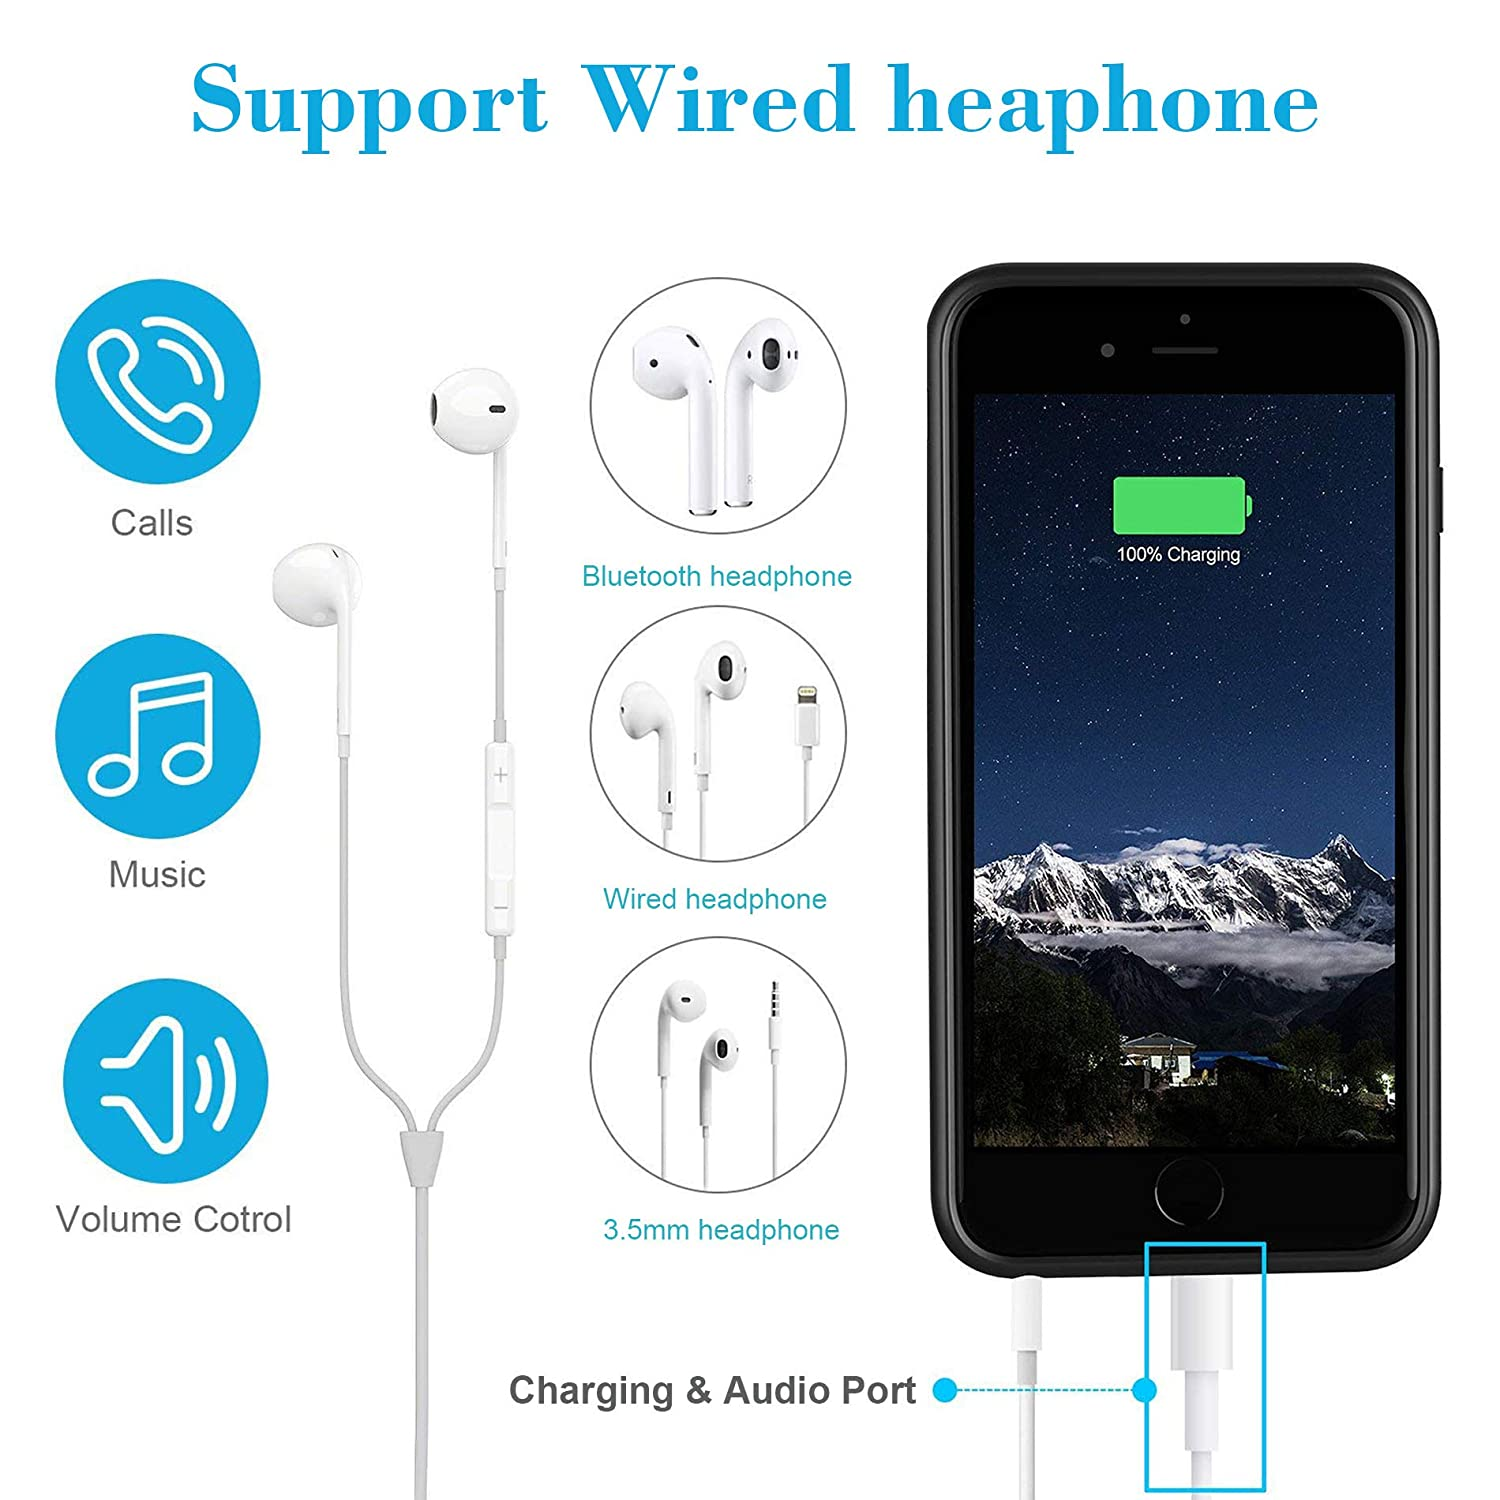 Support Wired Earphones Rechargeable Protective Extended Battery Pack Charging Case Slim Portable Charger Case iPhone 6// 6S// 7//8 The Regular One Only, Not The Plus+